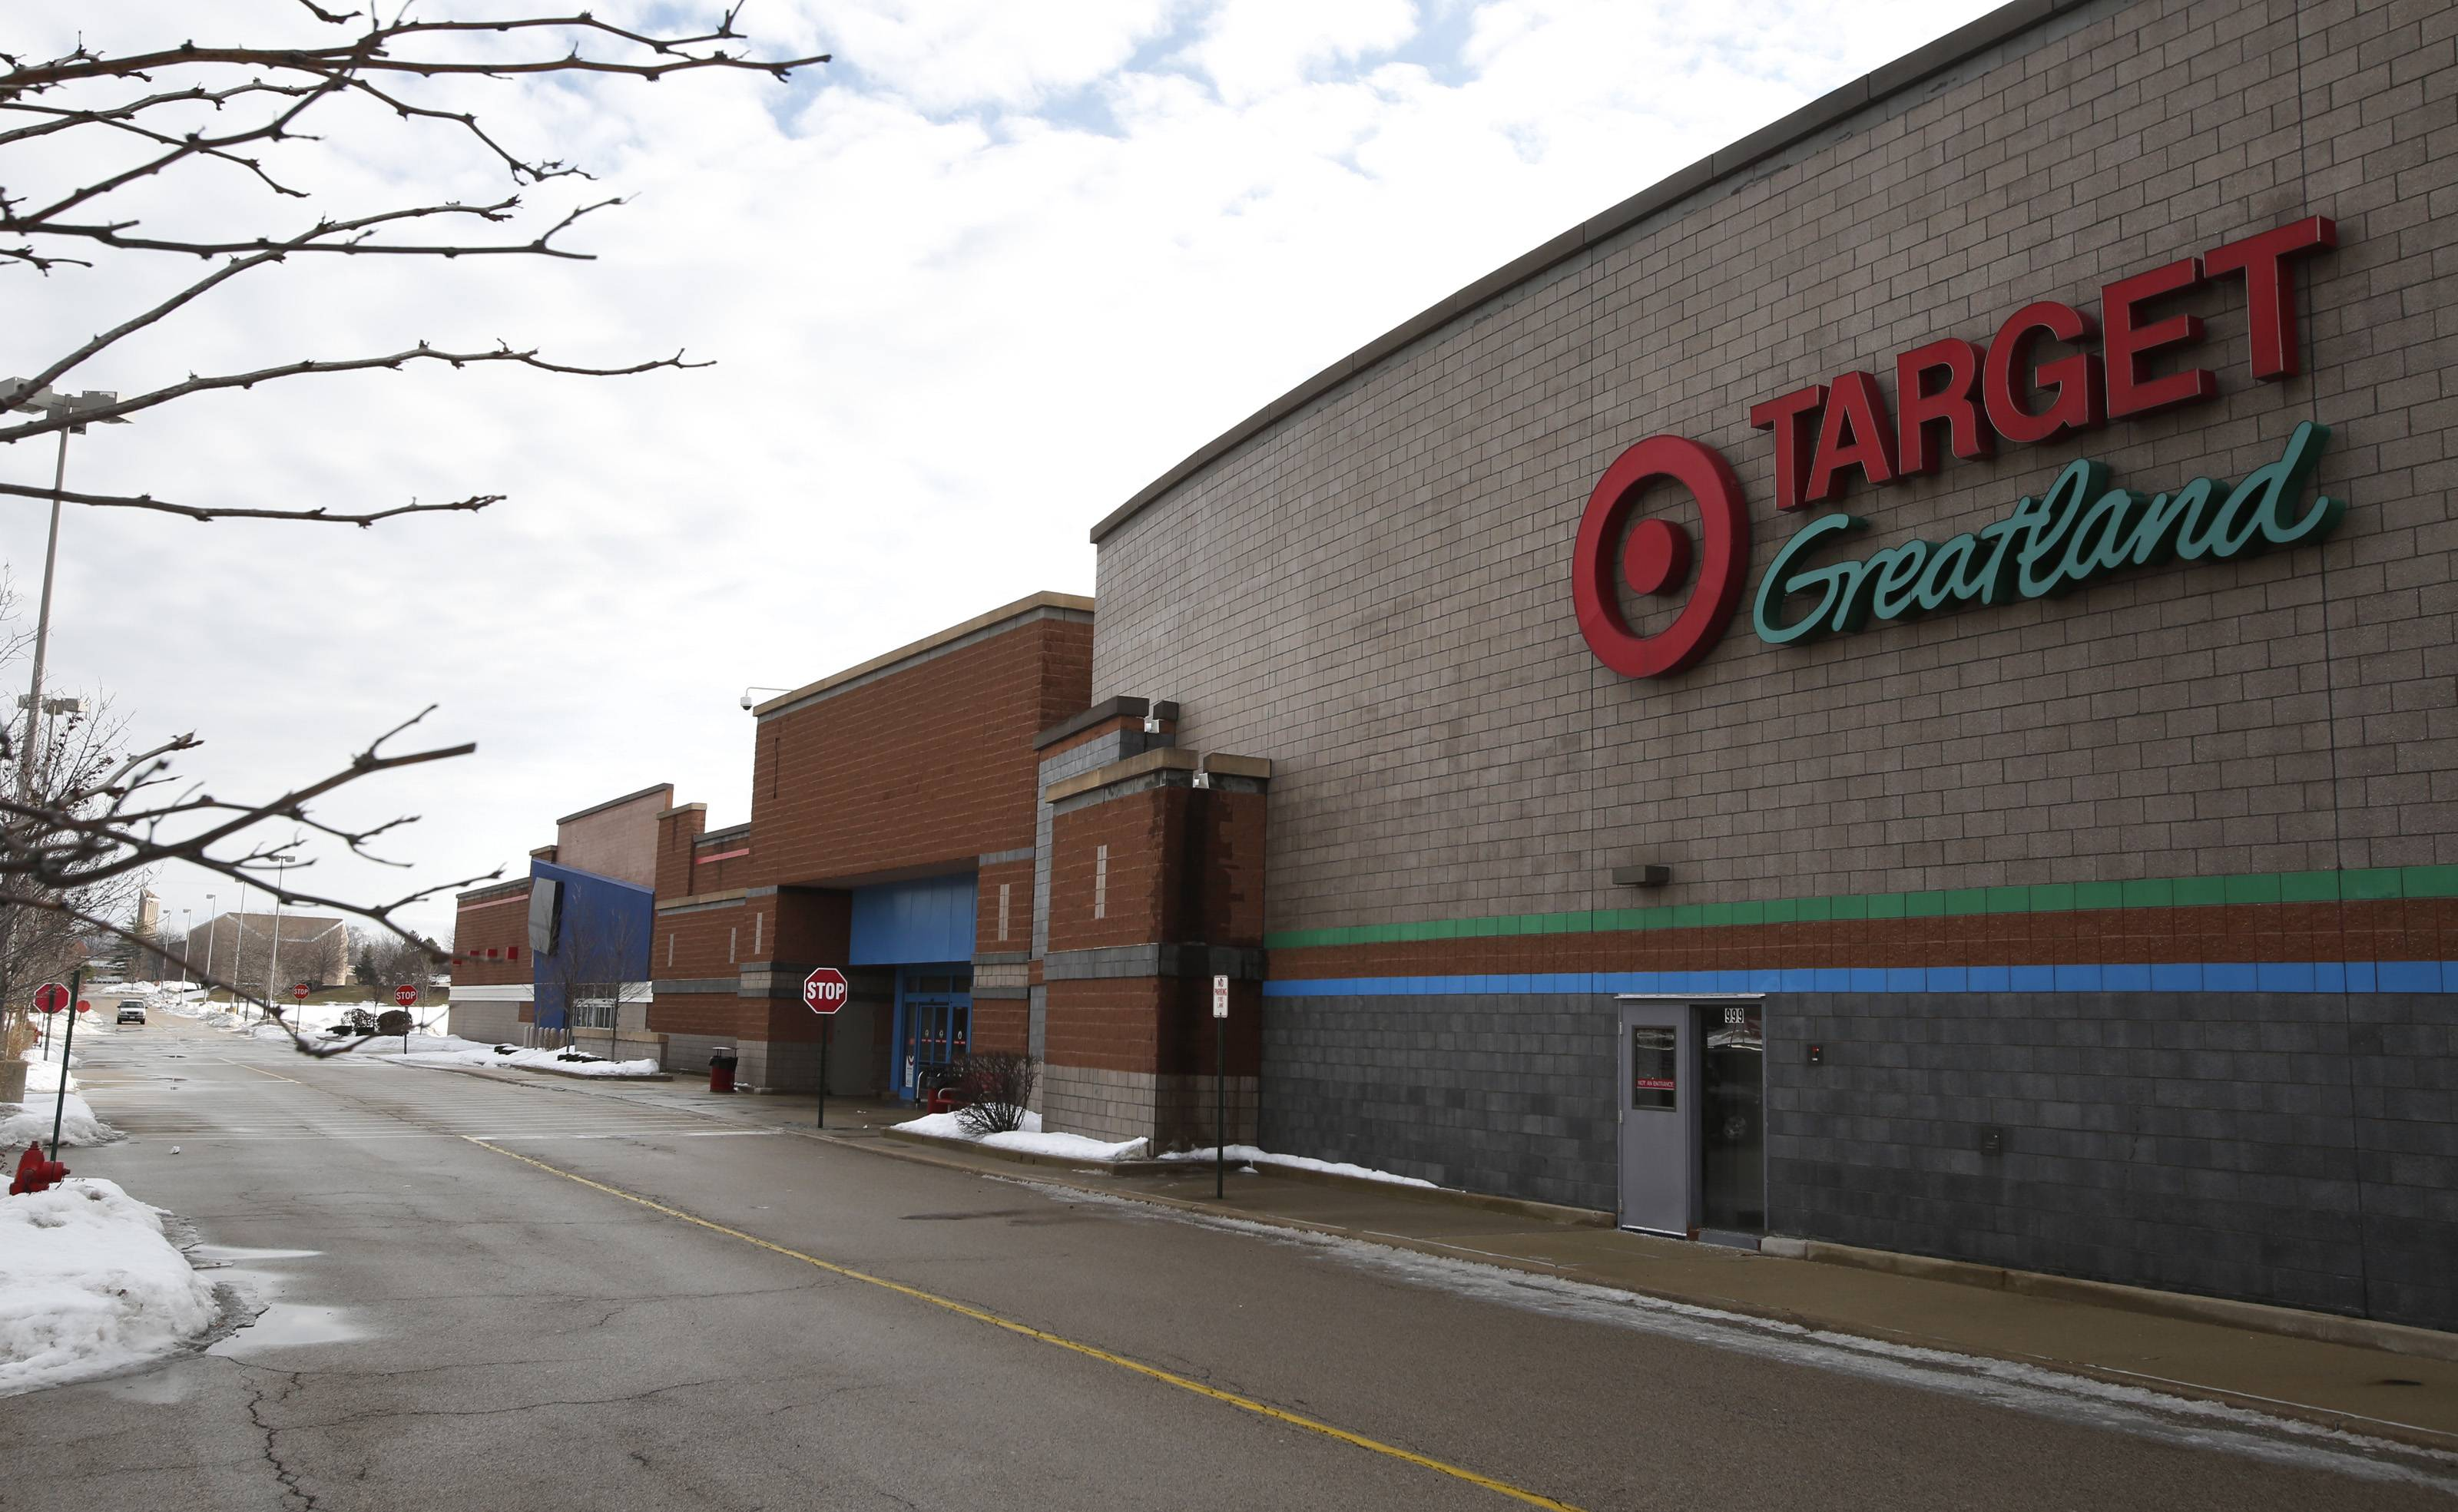 West Dundee officials are imposing two new taxes to cope with a $400,000 budget deficit they said is primarily the result of Target's pending closure. Target, one of the village's largest sales tax generators, is scheduled to close May 3.